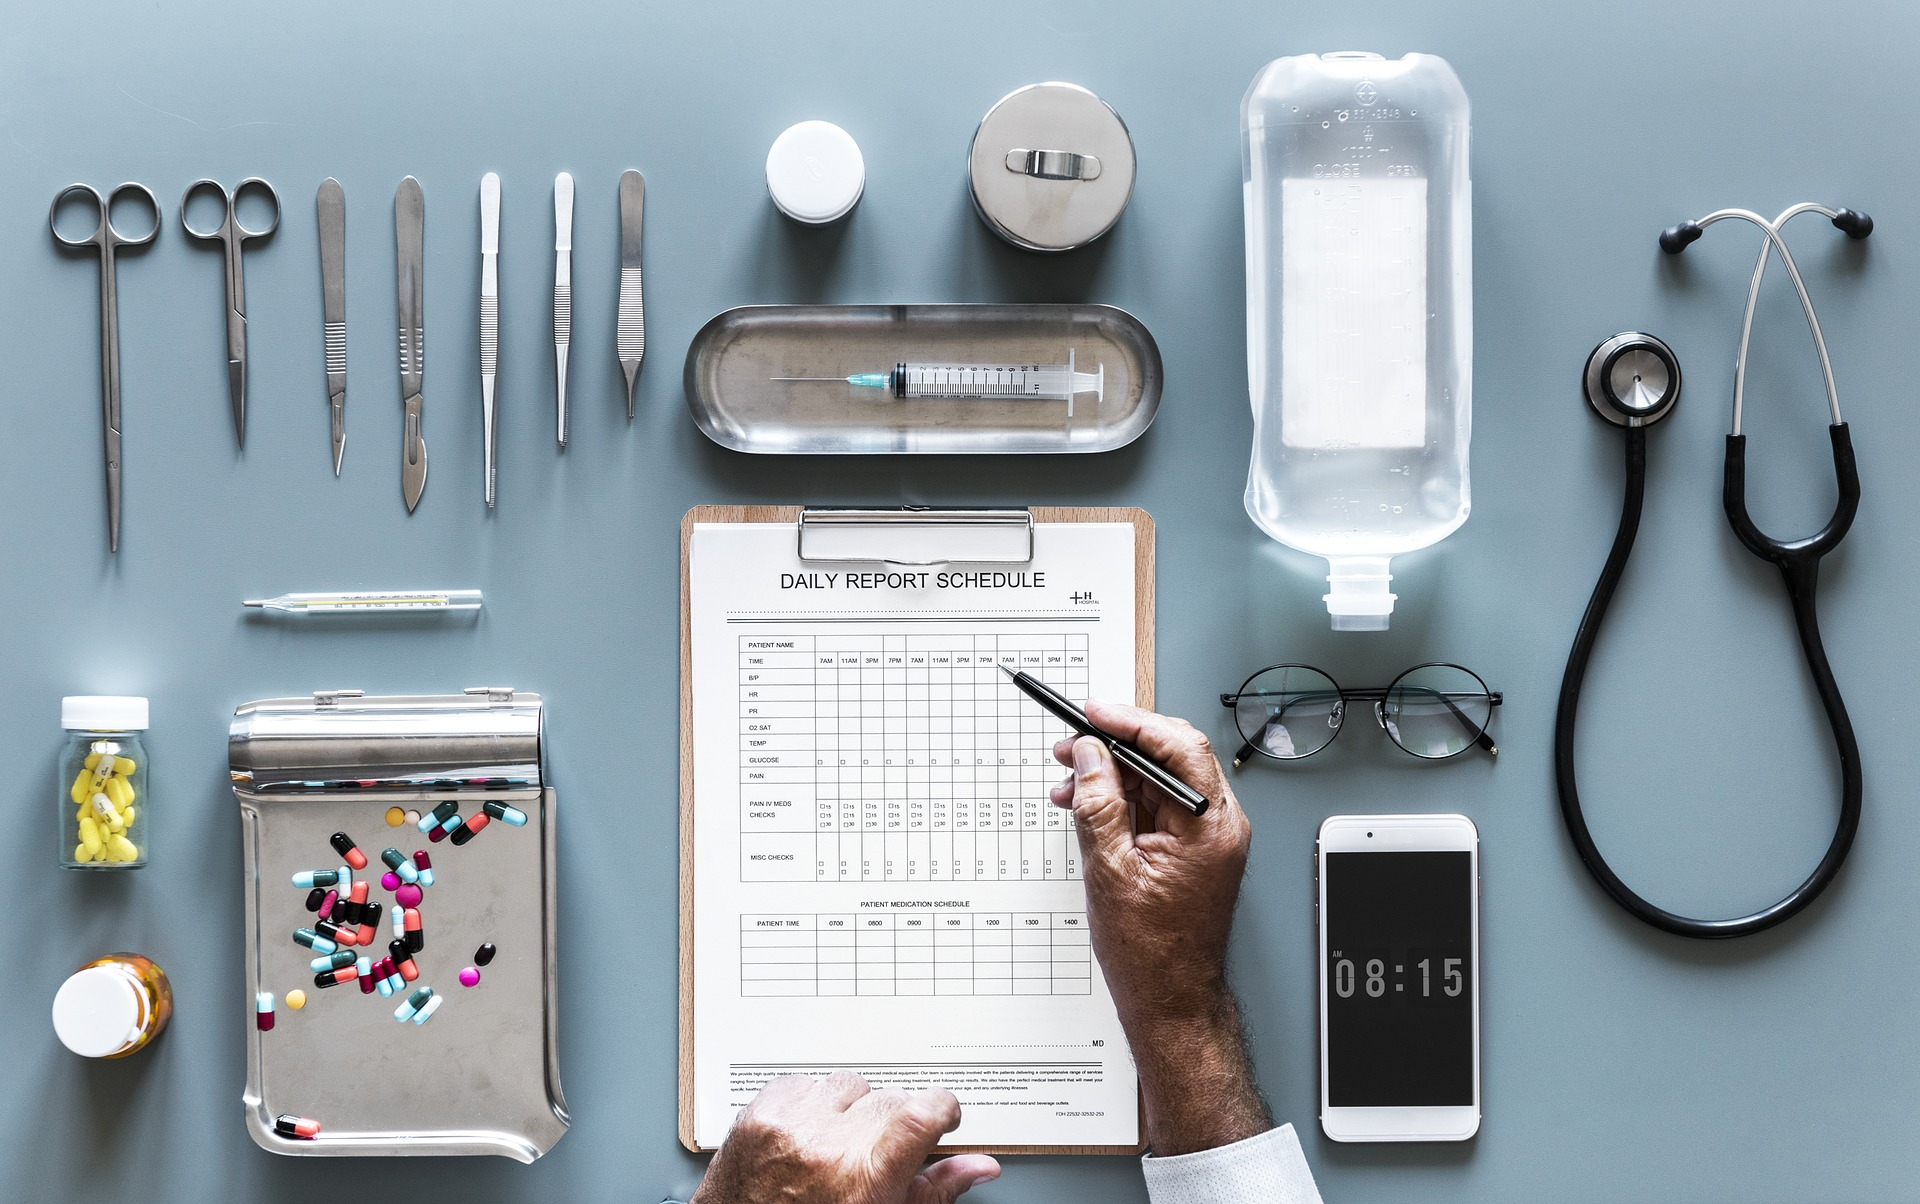 Doctor's hands filling out a chart with medical tools on a table